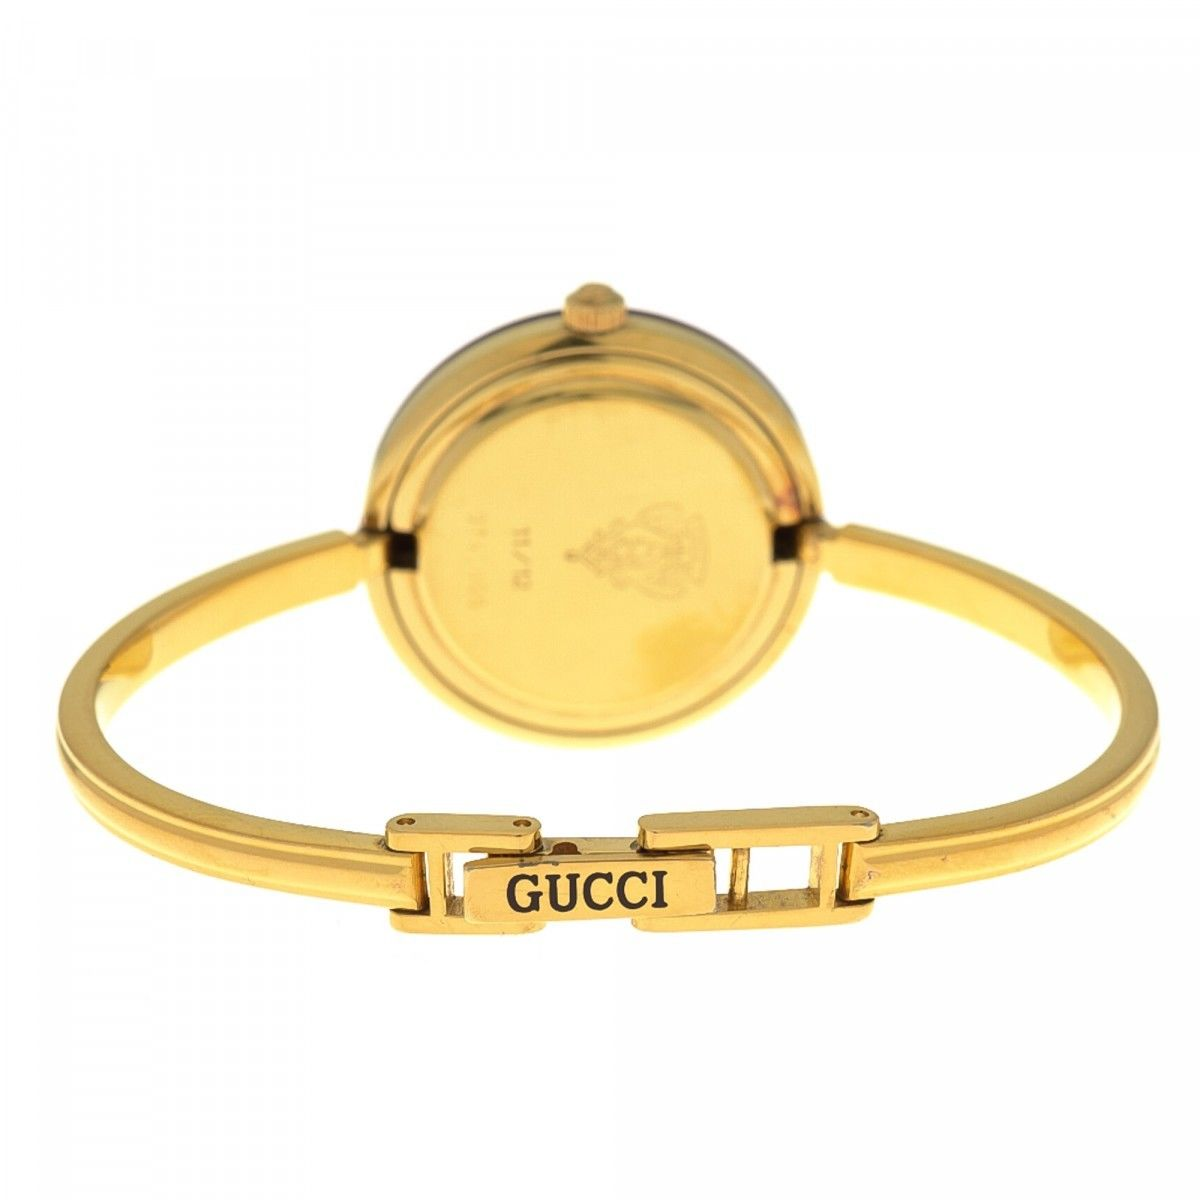 e82690b78e2 Gucci Timepiece 25mm 11 12 With Interchangeable Bezels 18K Gold ...